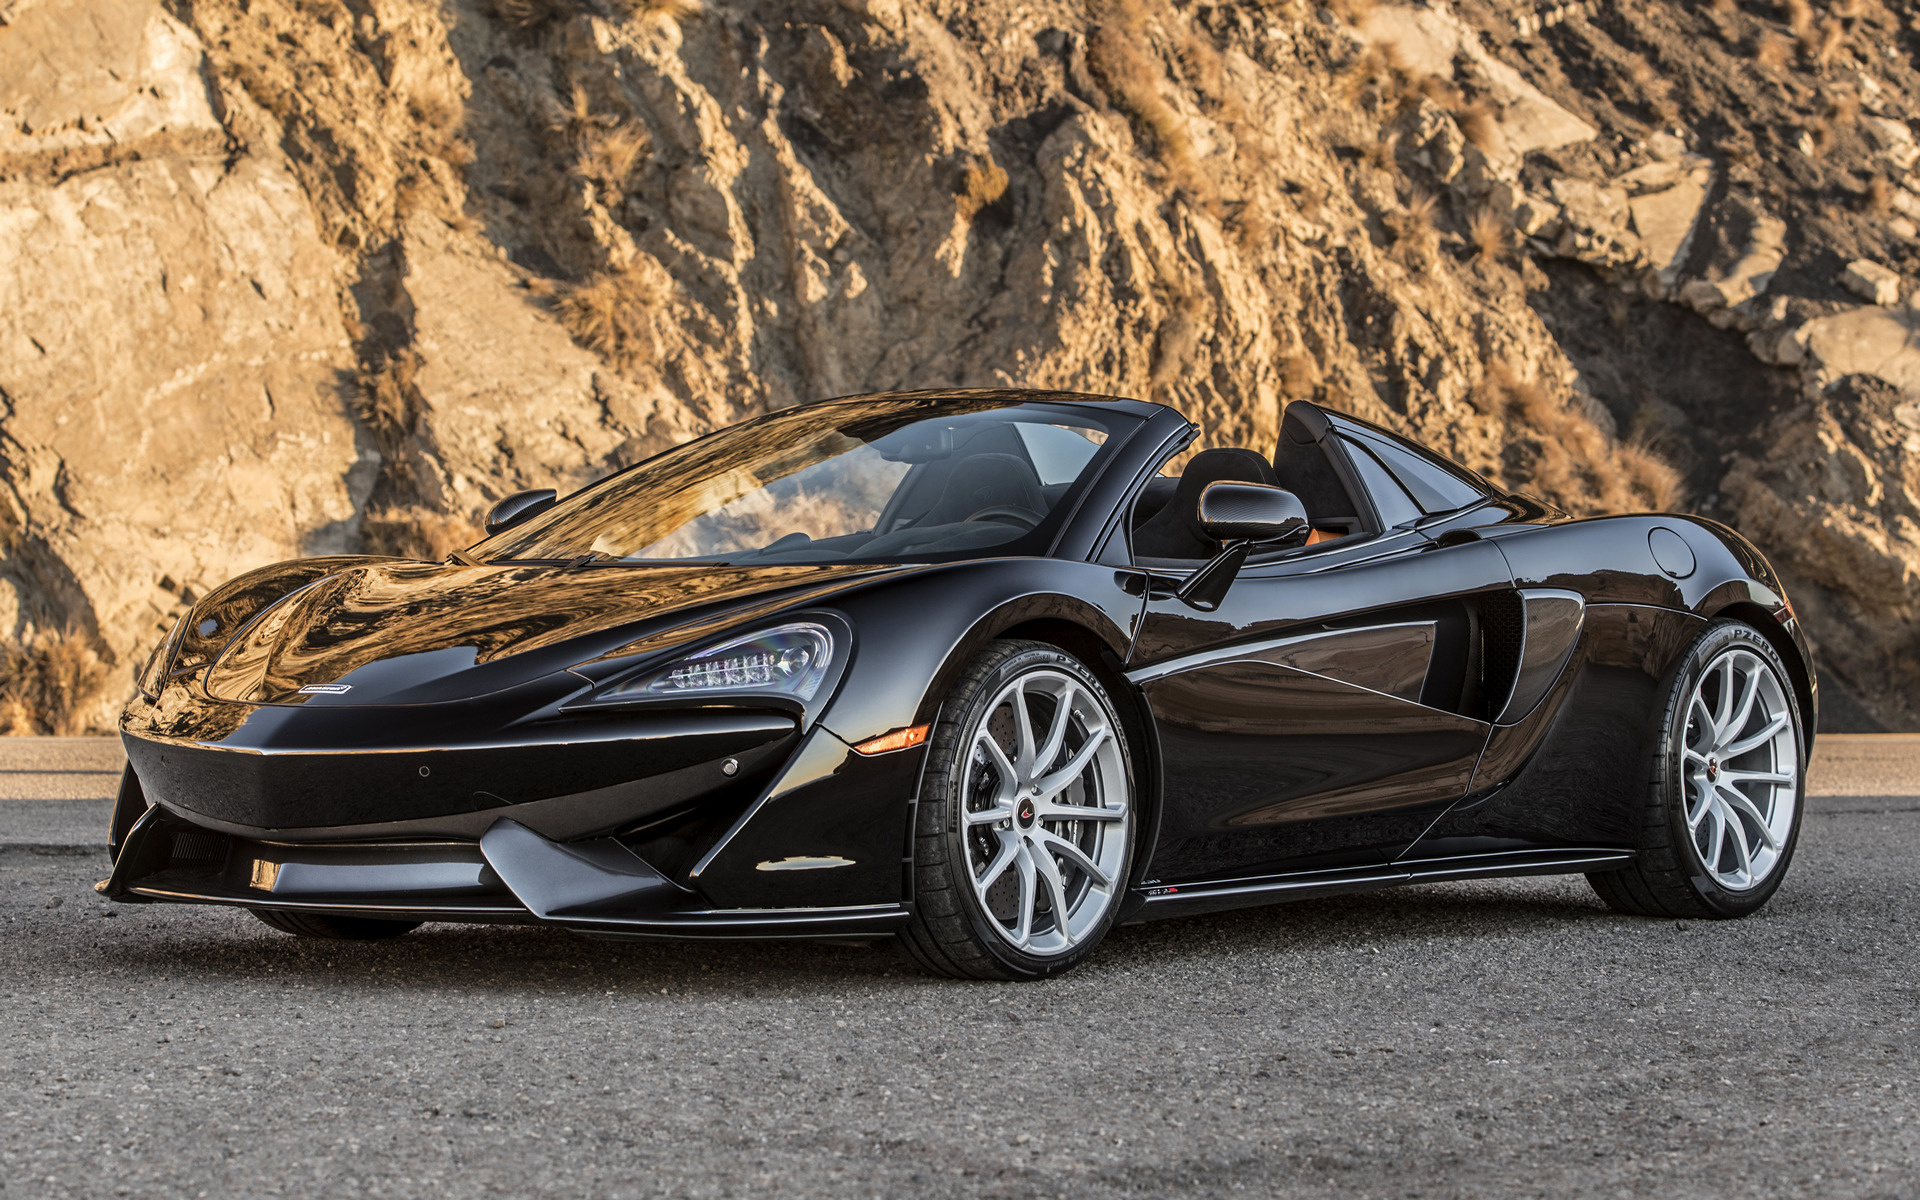 McLaren 570S Spider (2018) US Wallpapers and HD Images - Car Pixel